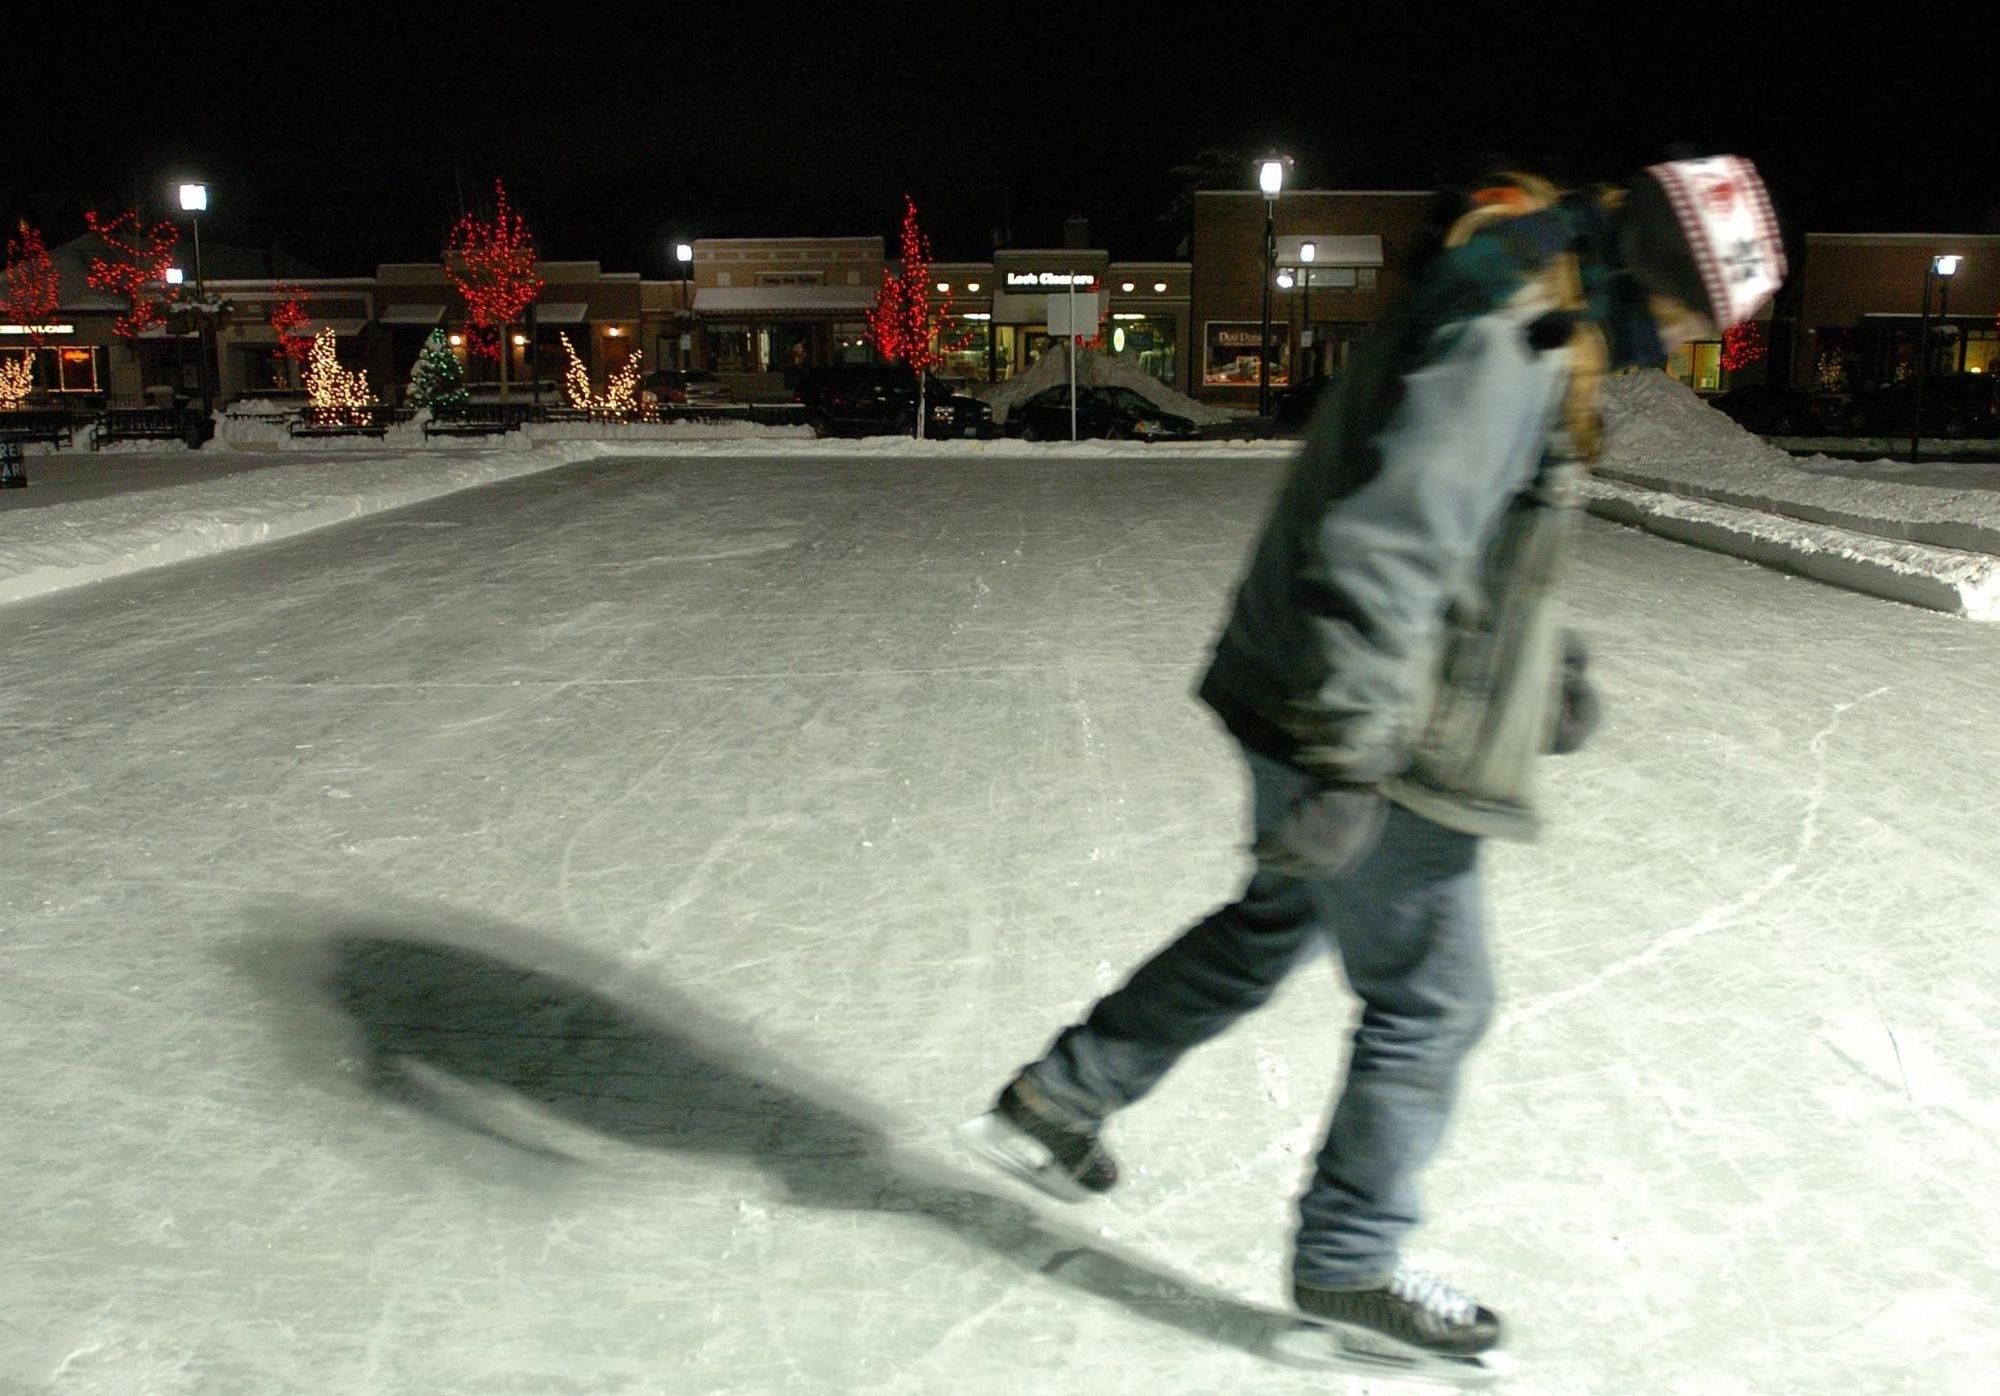 A.J. Bruhn enjoys the cold night air Friday while skating on the new outdoor rink at the site of the former Lisle village hall.